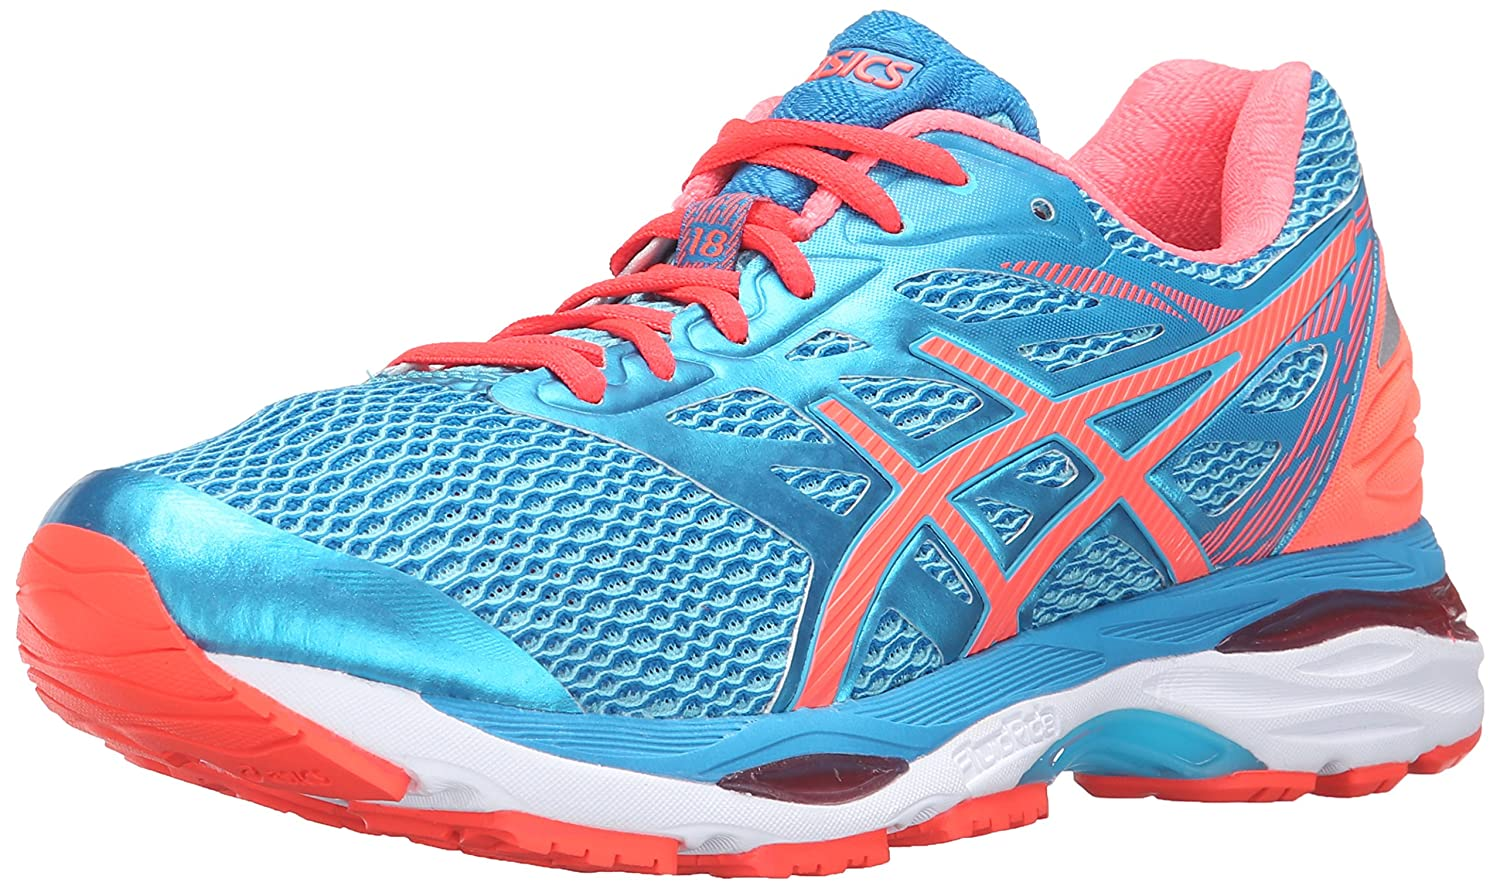 ASICS Women's Gel-Cumulus 18 Running Shoe B017USLW92 9.5 B(M) US|Aquarium/Flash Coral/Blue Jewel